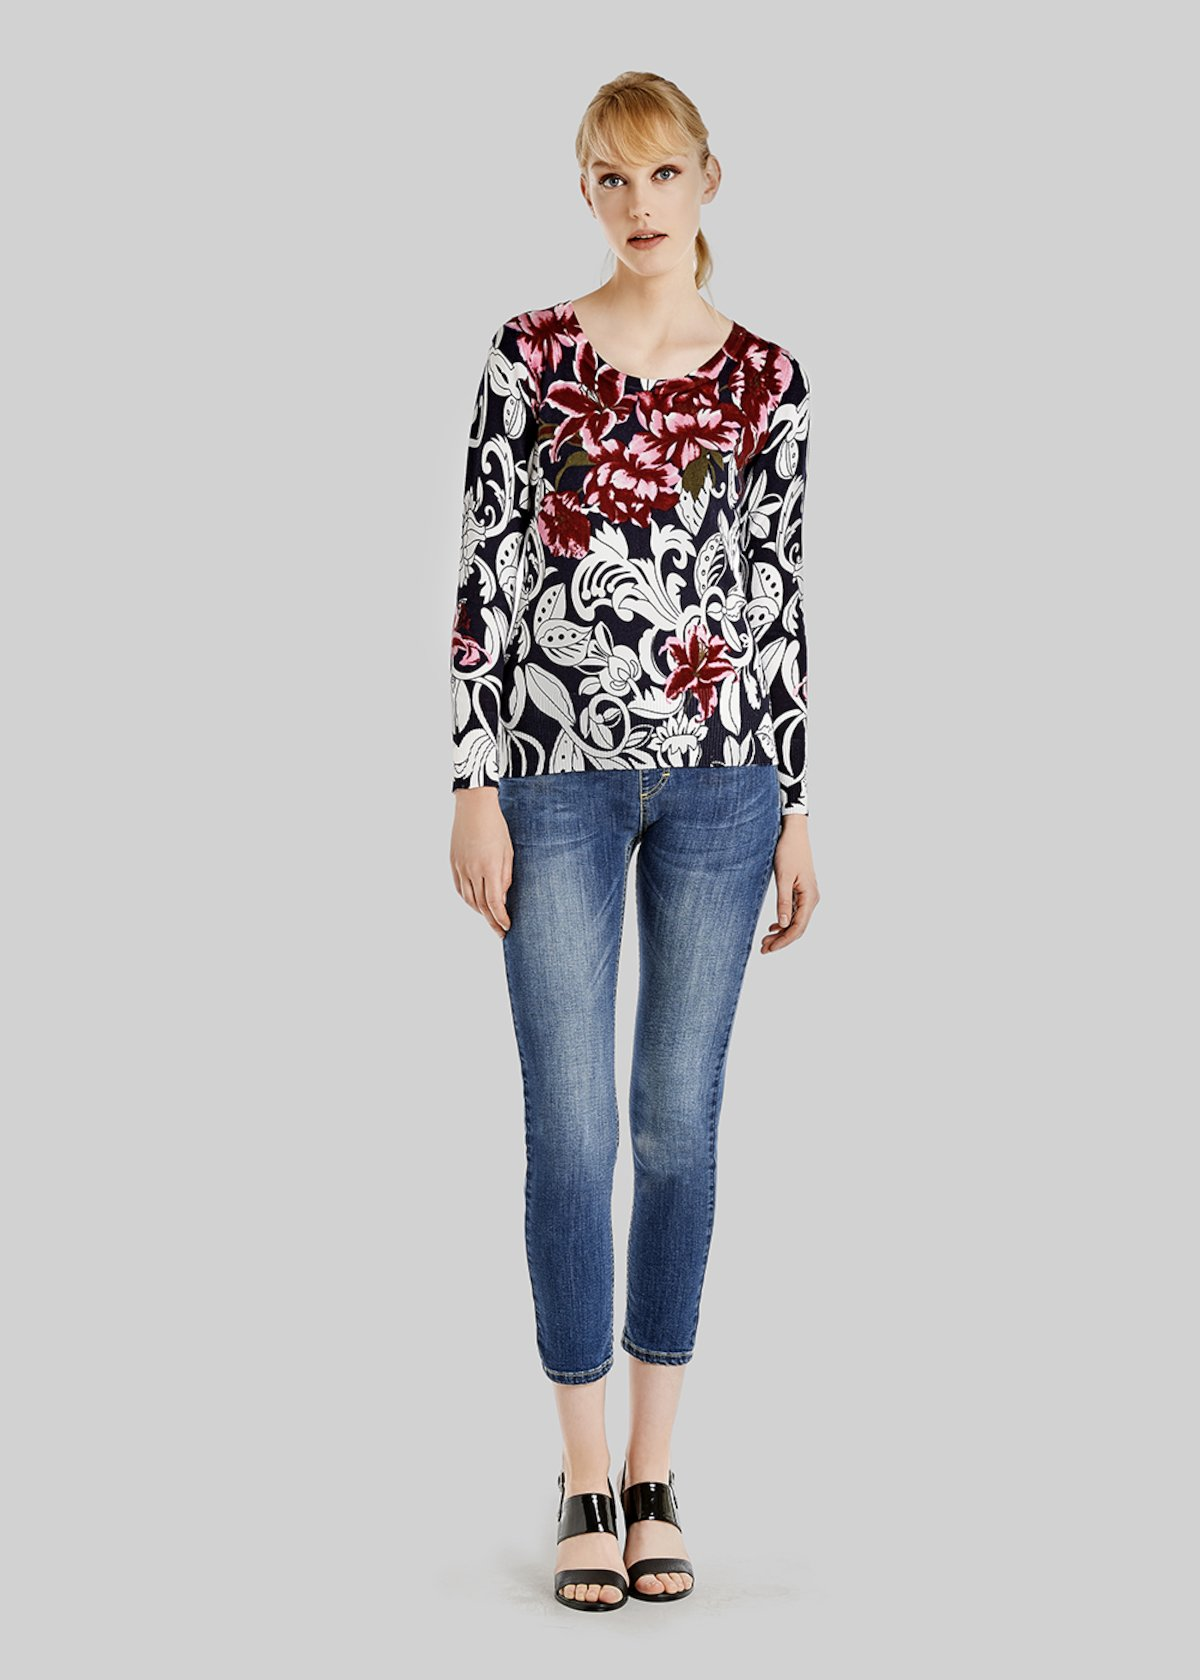 Maike sweater with floral print with ribs - Medium Blue\ White\ Fantasia